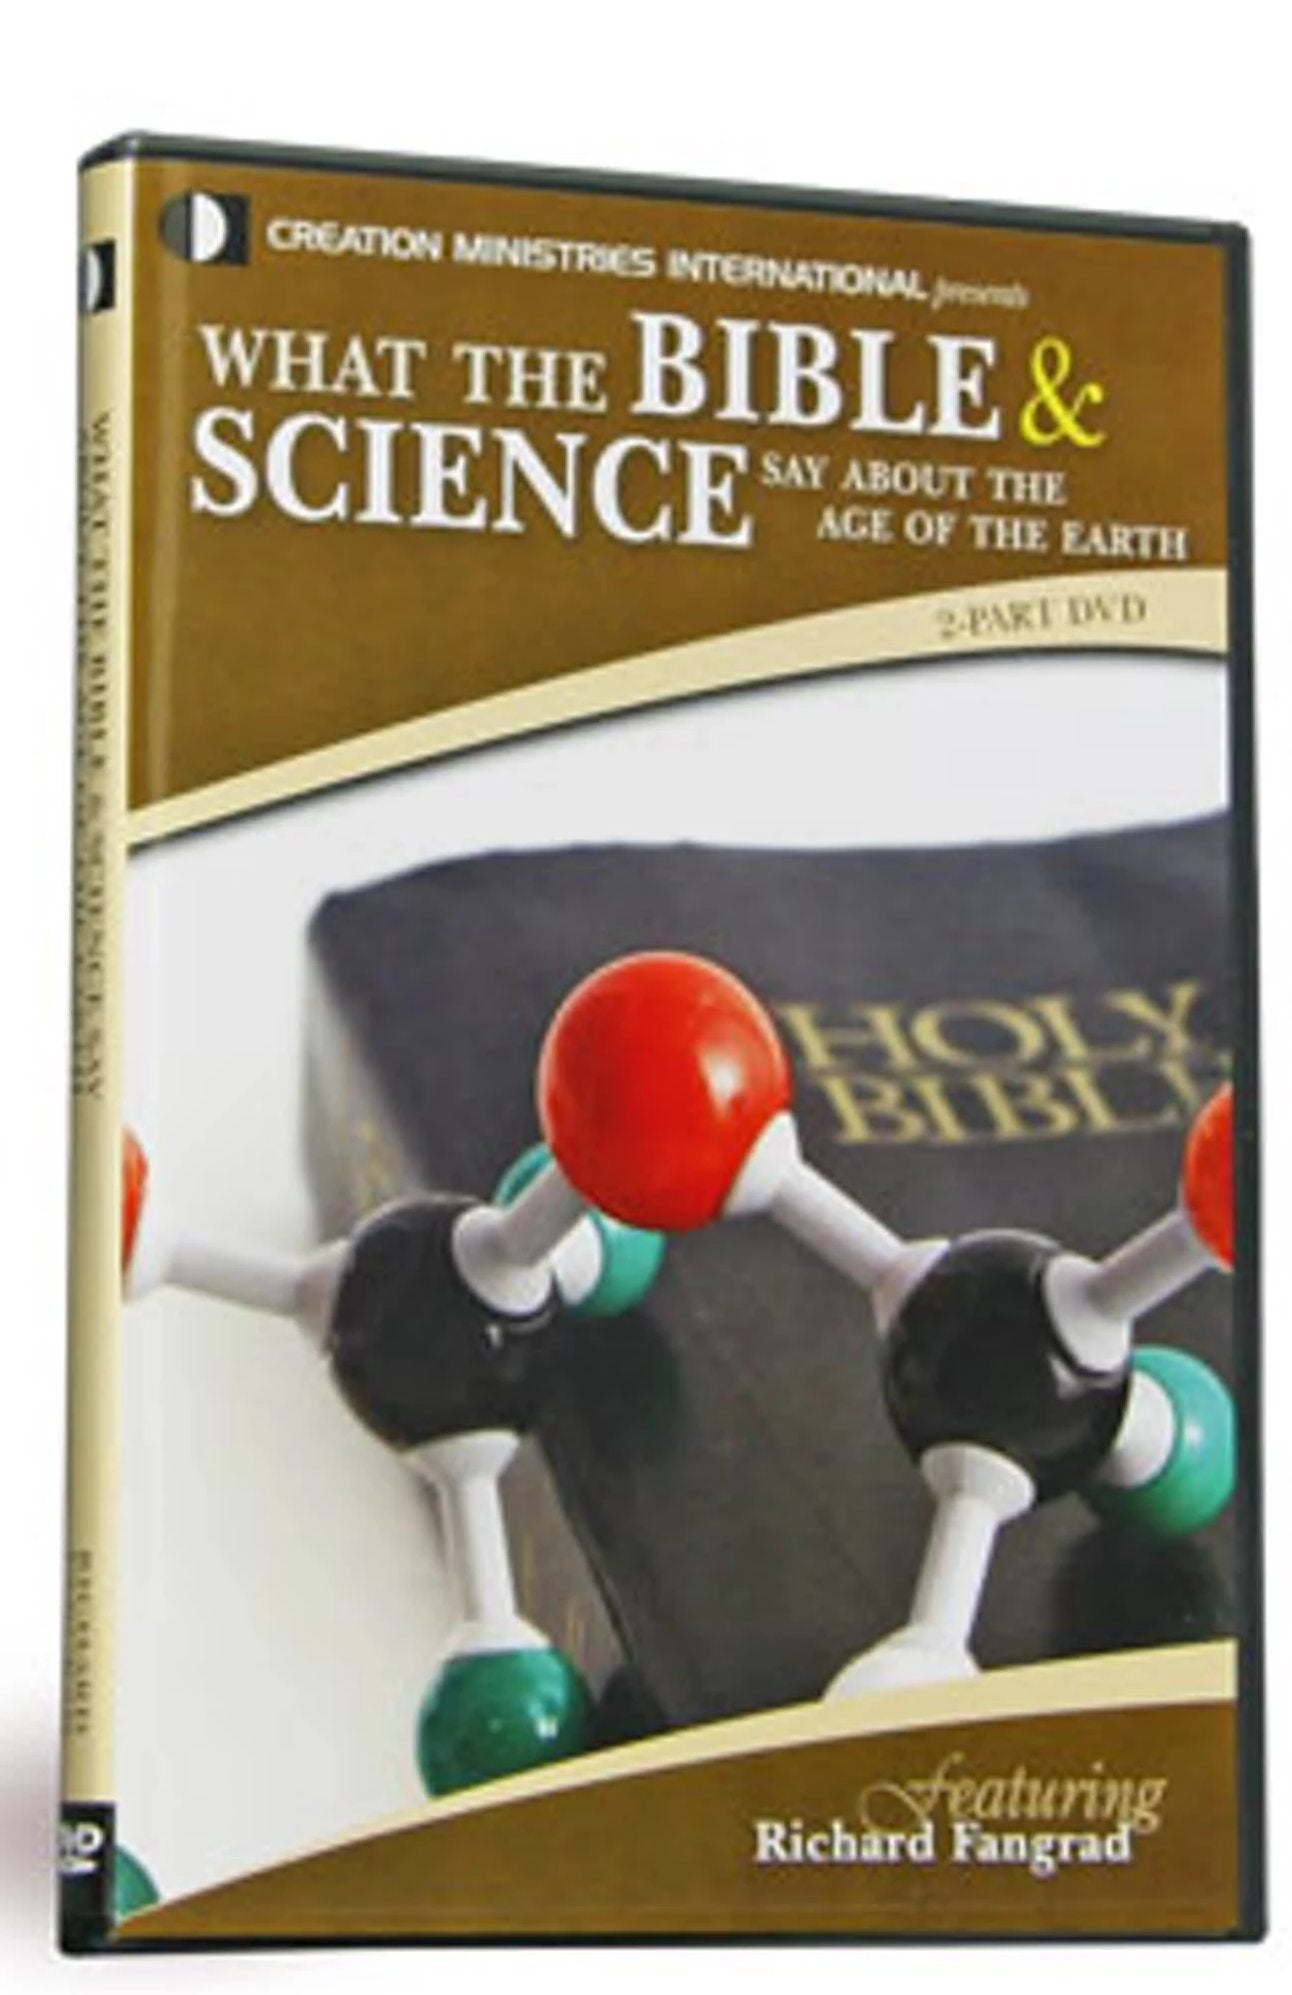 What the Bible and Science Say About the Age of the Earth: DVD